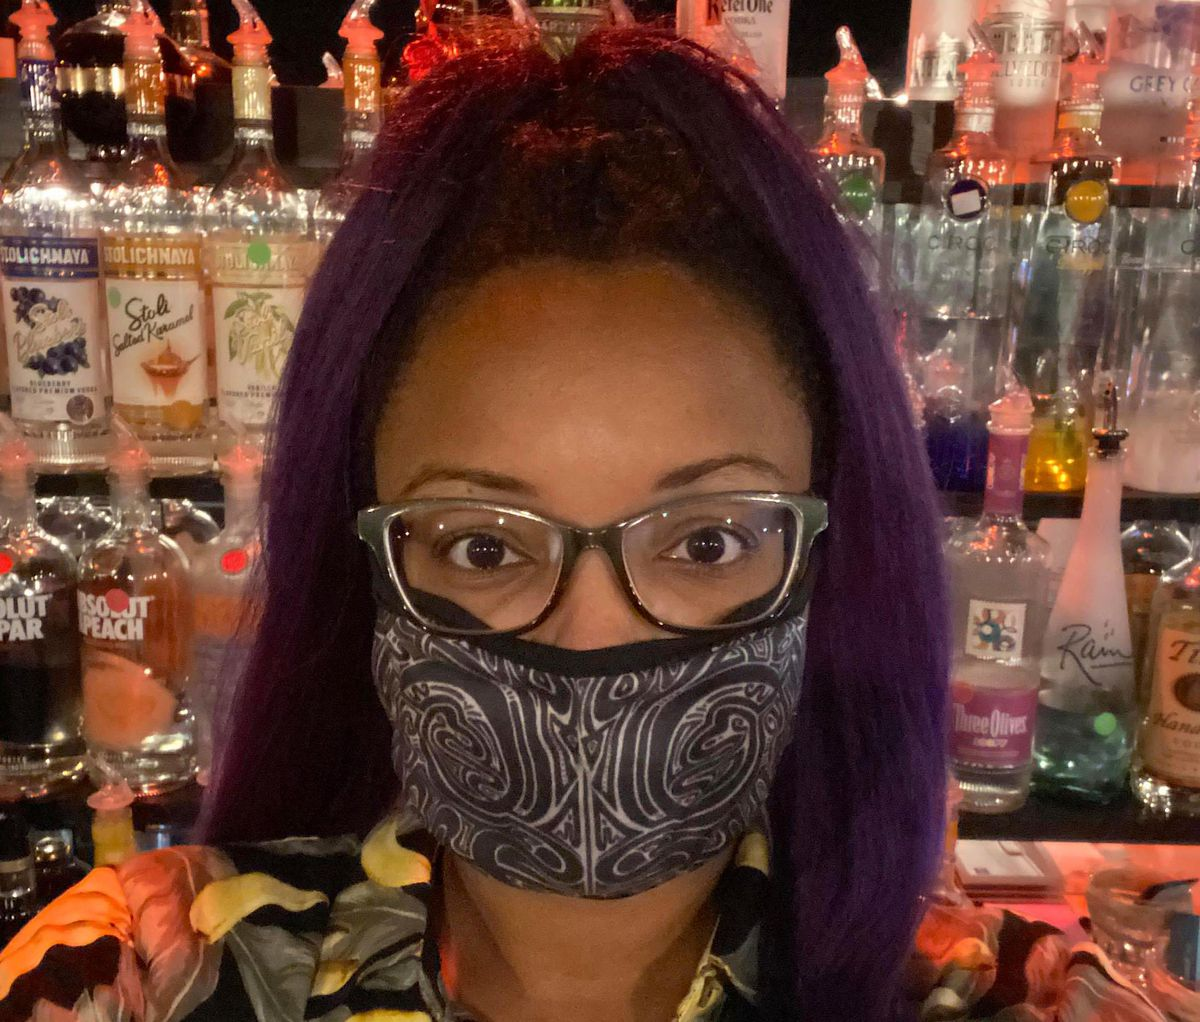 Melanie Mack wears glasses and a black and white printed mask in front of liquor bottles at the bar.